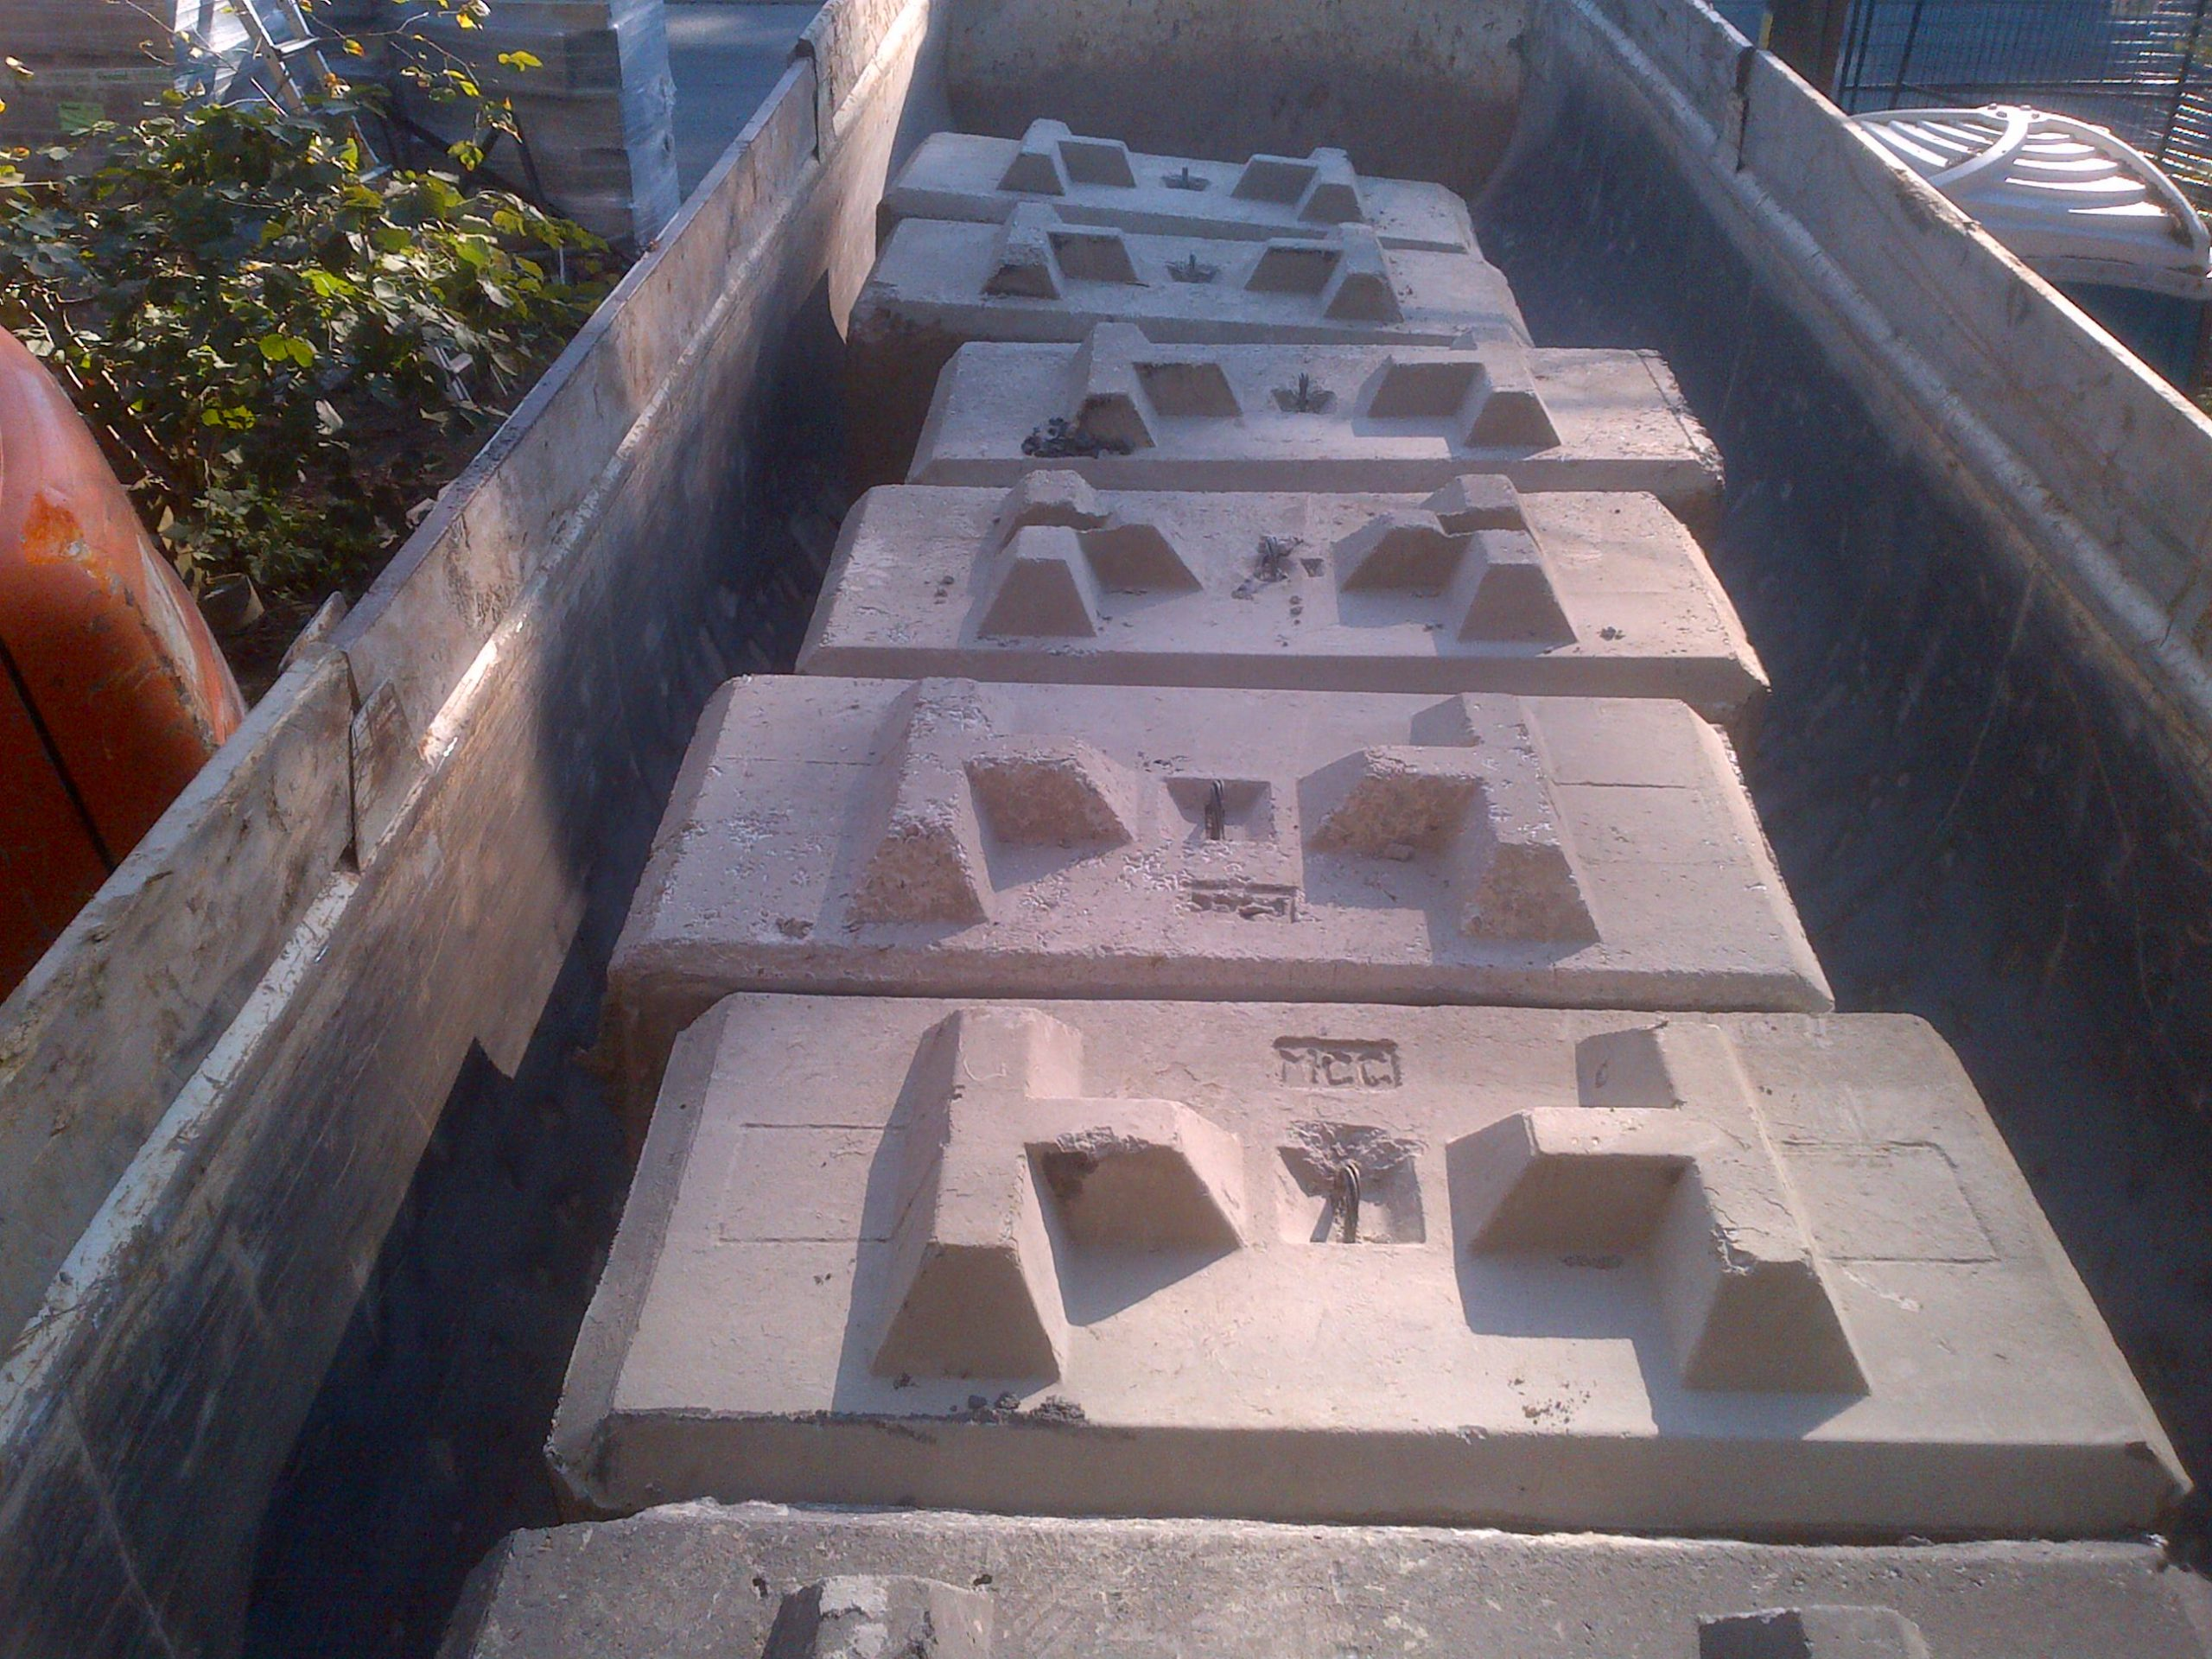 One of the deliveries of concrete lock blocks.